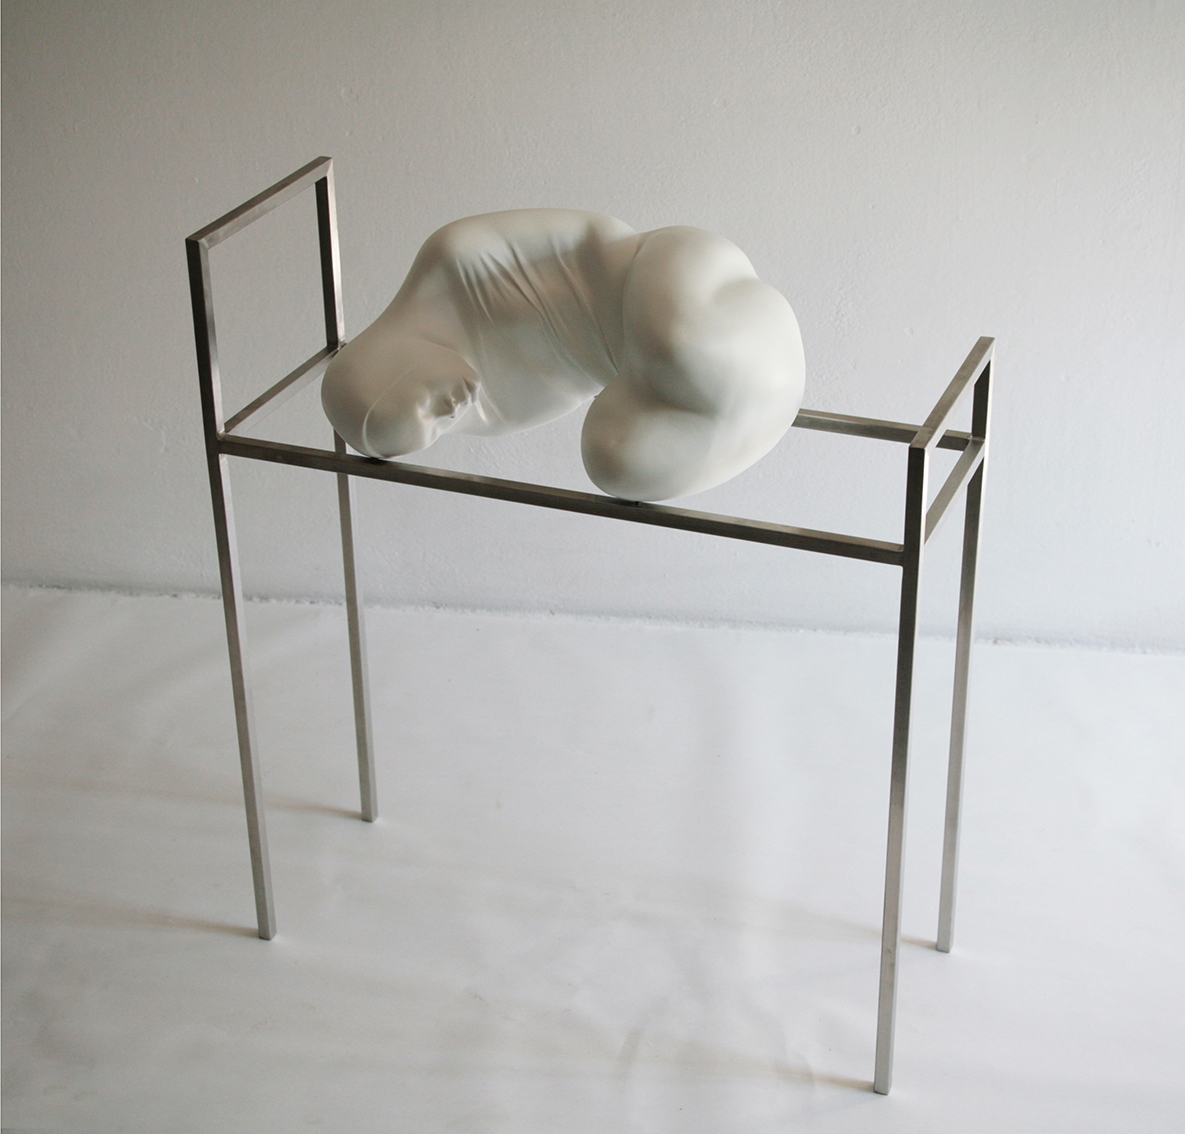 Adama 2009, Resin Sculpture | Maïmouna Guerresi